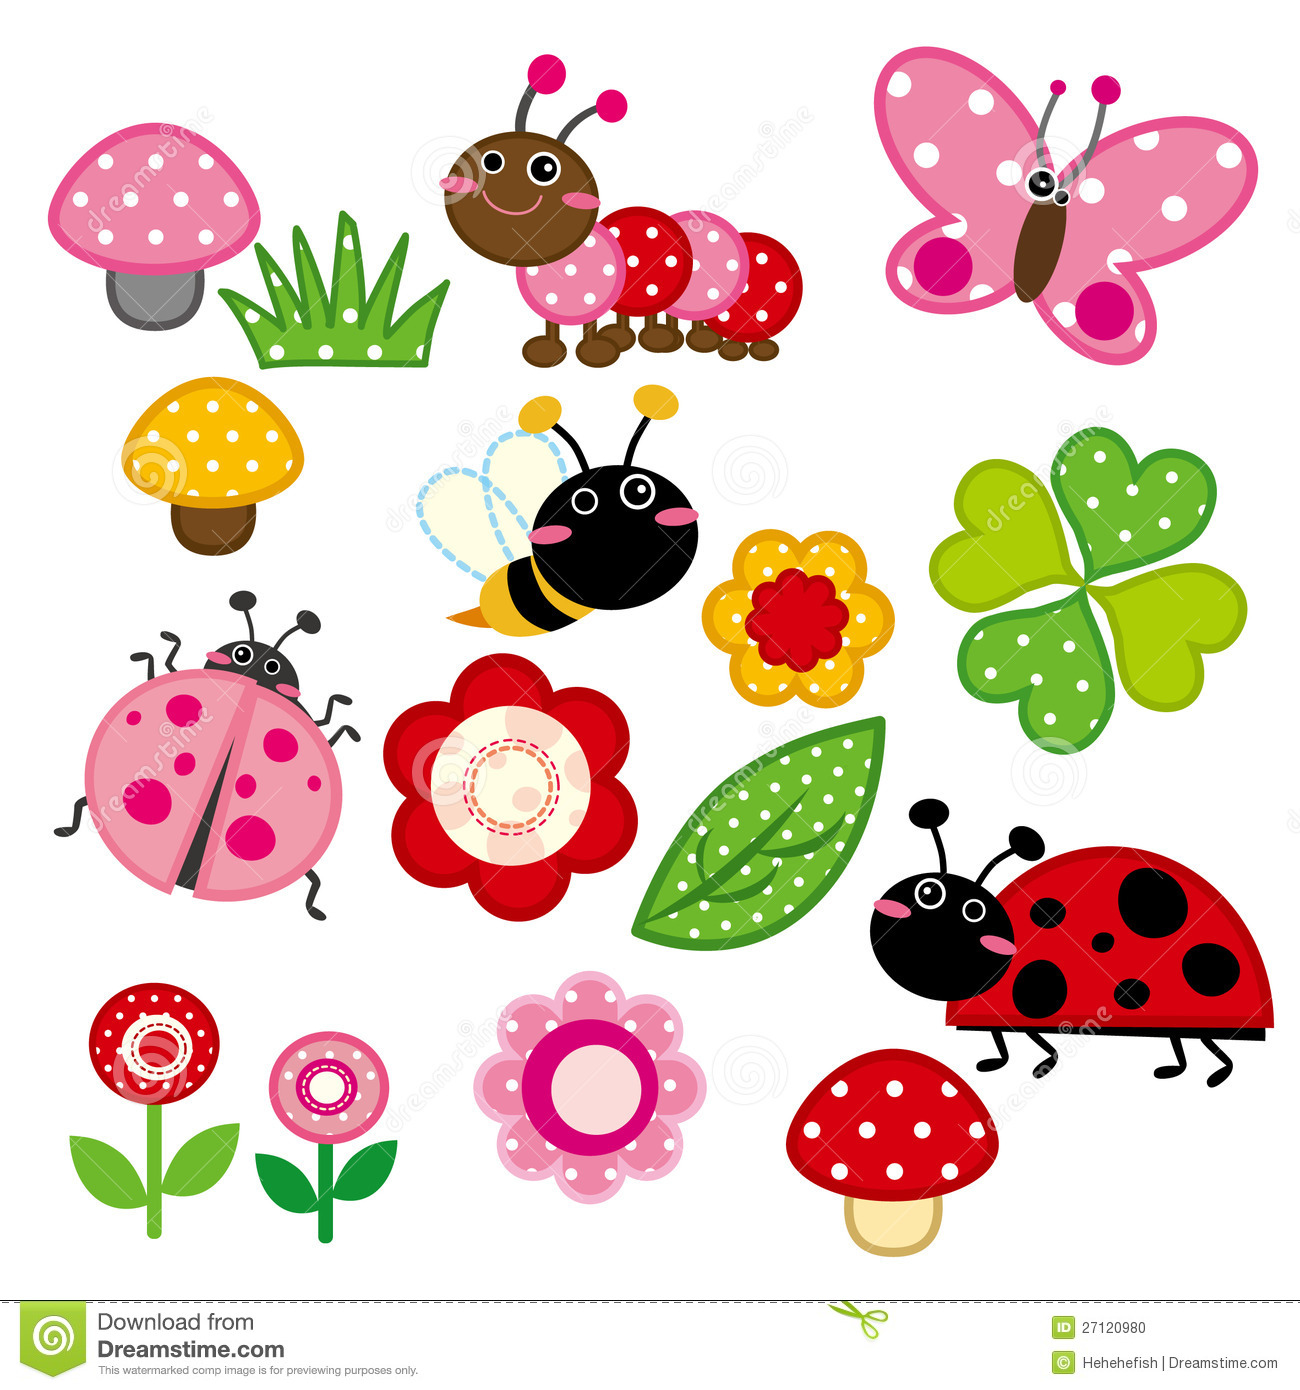 Garden insects clipart.